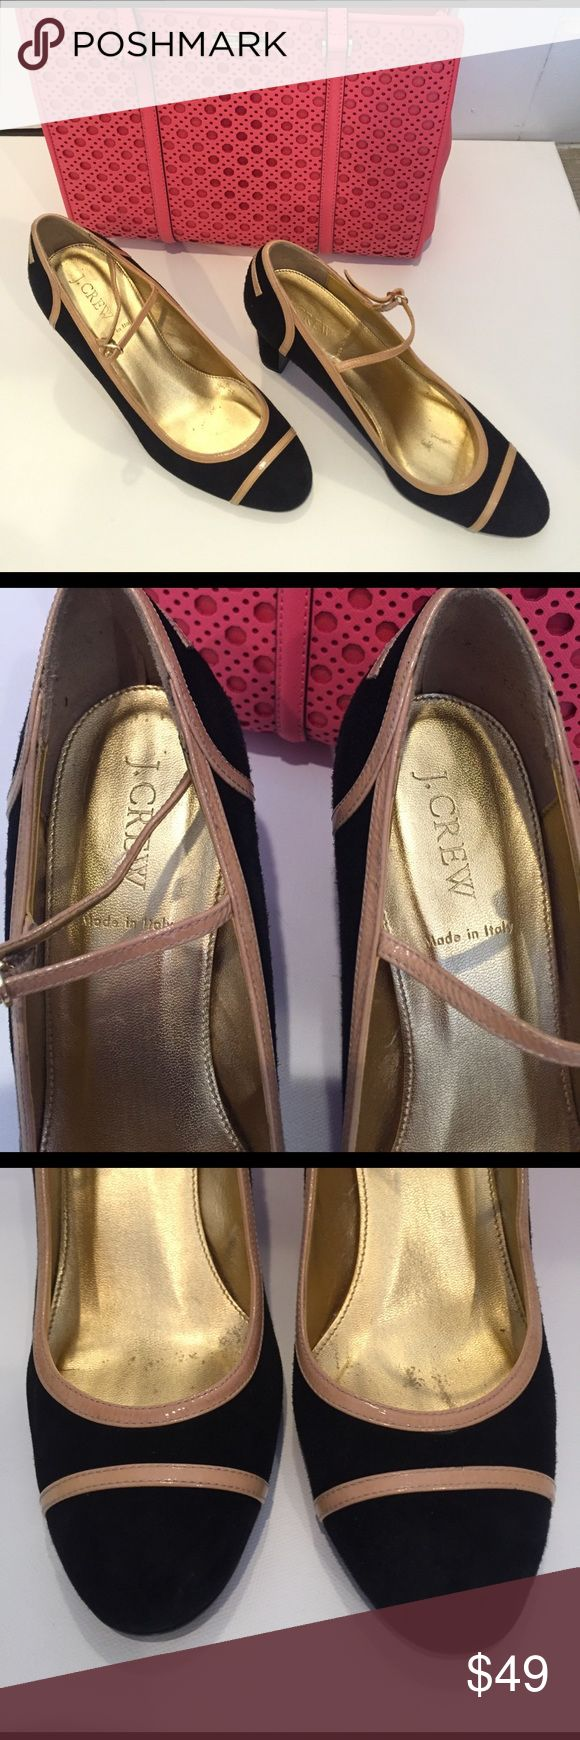 "J.Crew Spencer Patant Trimmed Suede Mary Jane Spencer Patent-trimmed suede Mary Janea from j.crew. Italian made!  Excellent Condition only few marks on the sole as pictured.  Retailed at $265 heel 3.5"".  They run slightly smaller so they're more 8.5-9 in Size.  Reasonable offers welcome 😊 J. Crew Shoes Heels"